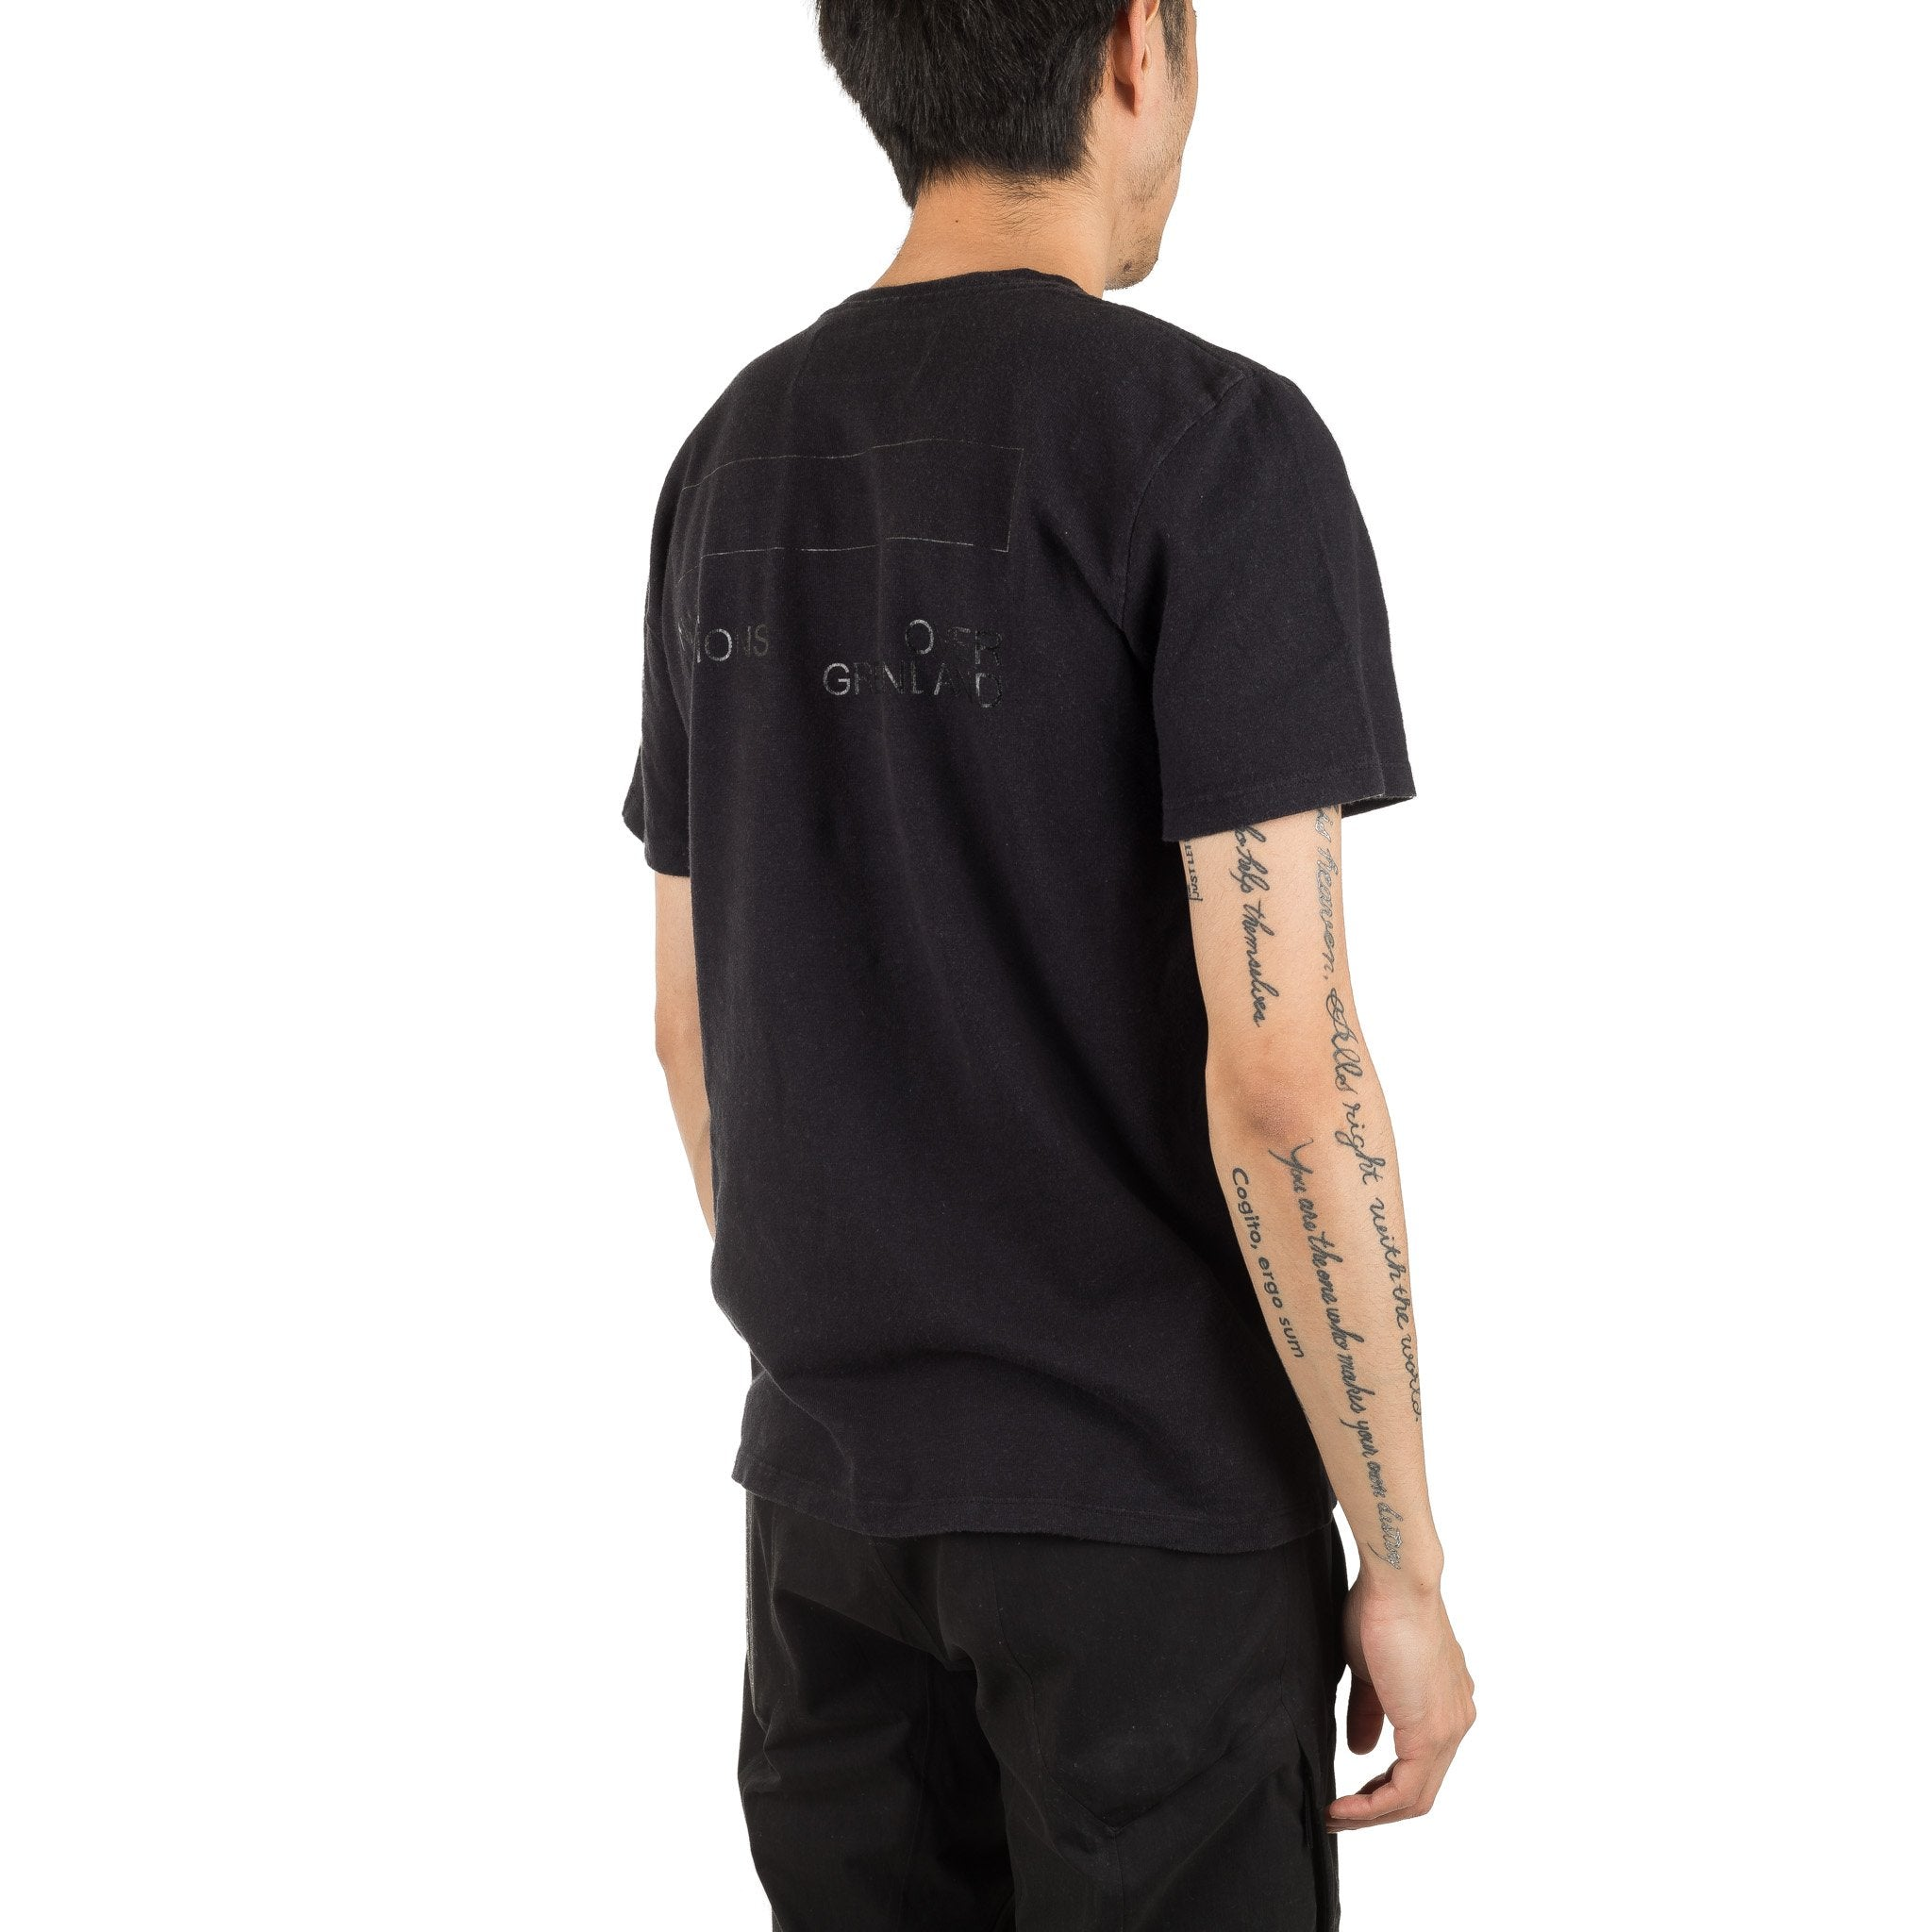 Arc Hemp Tee HPS10001 Black